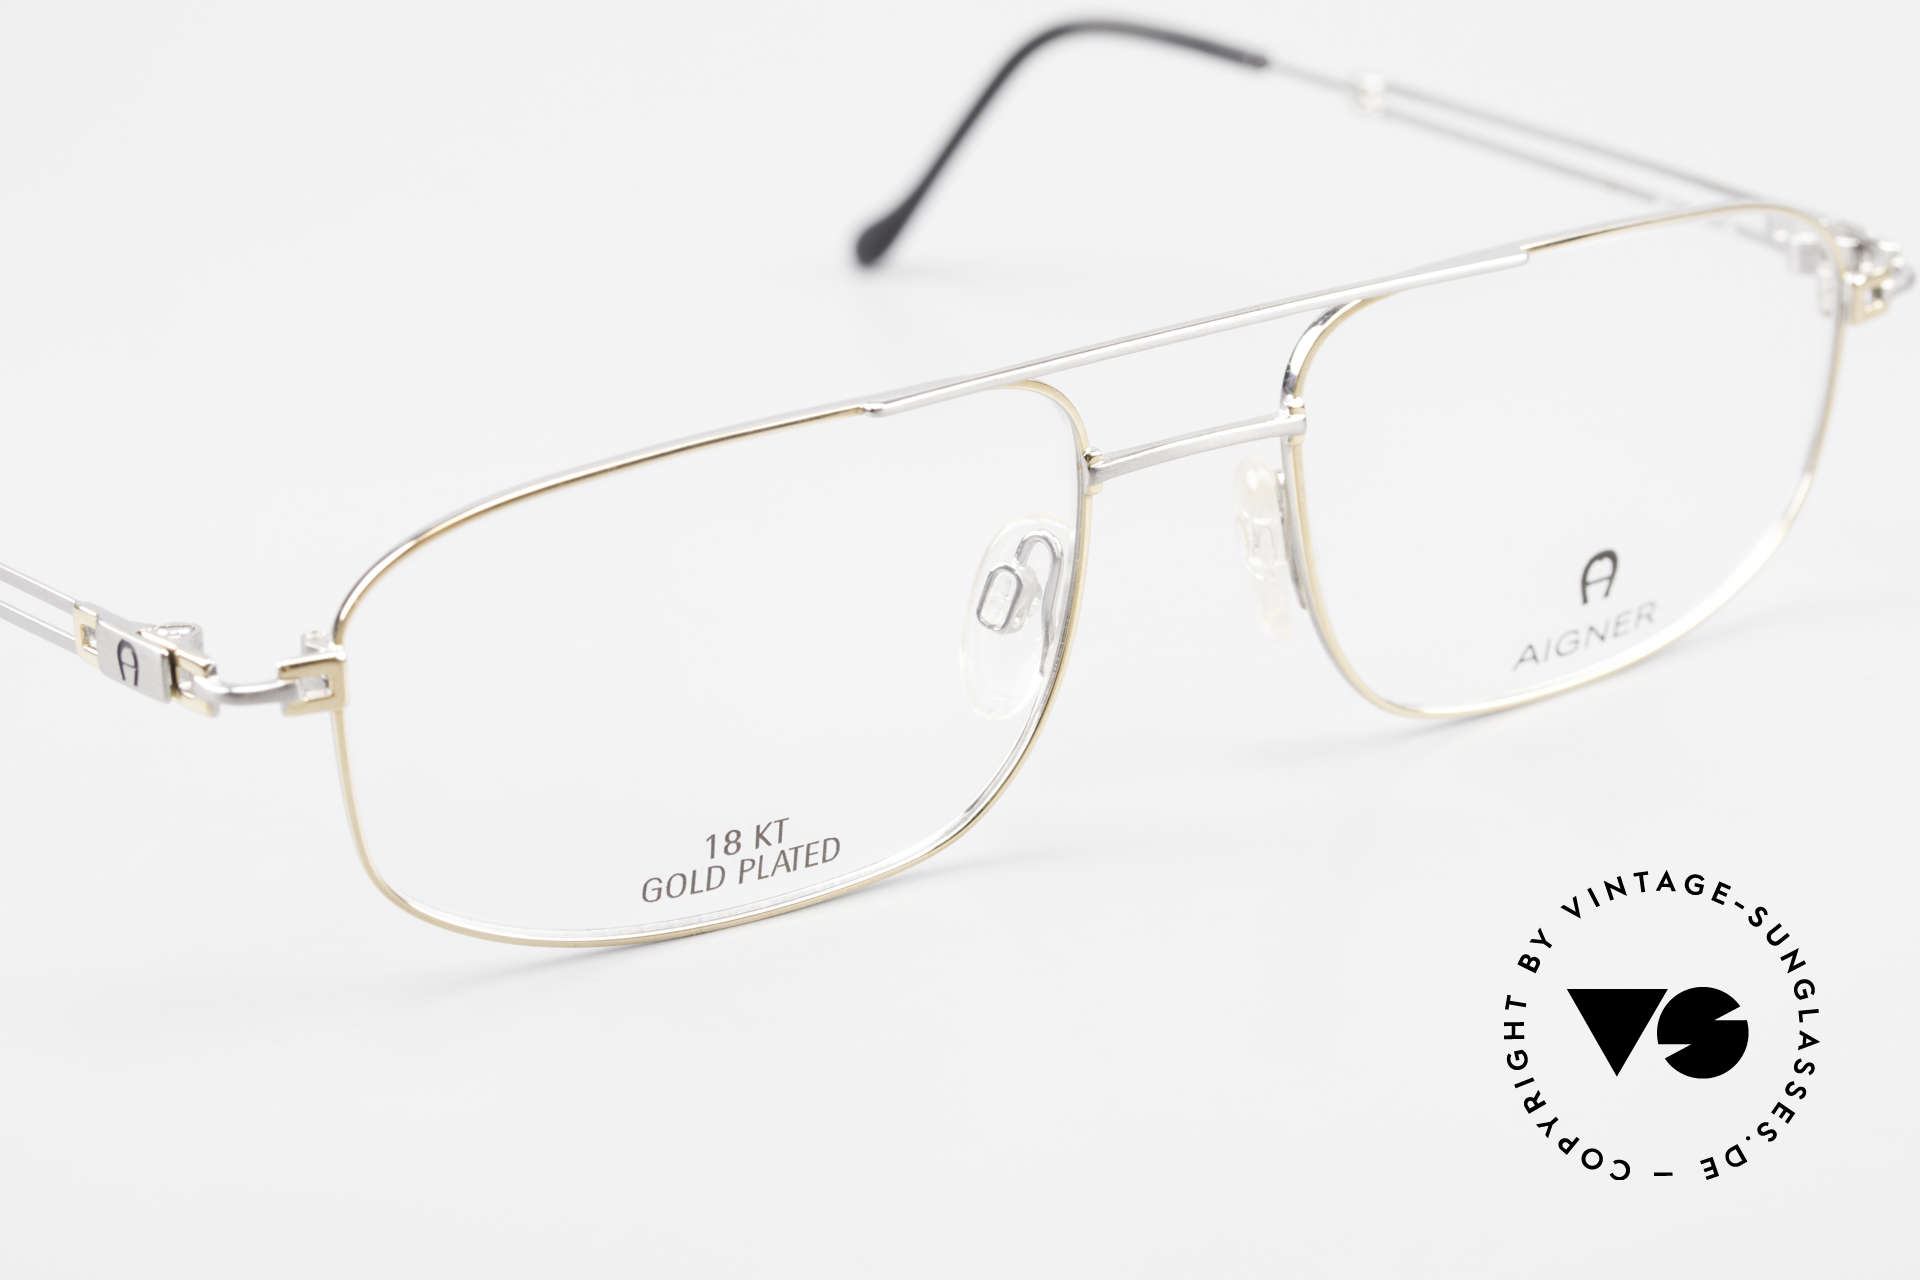 Aigner EA9111 90's Men's Frame Gold Plated, the DEMO lenses can be replaced with lenses of any kind, Made for Men